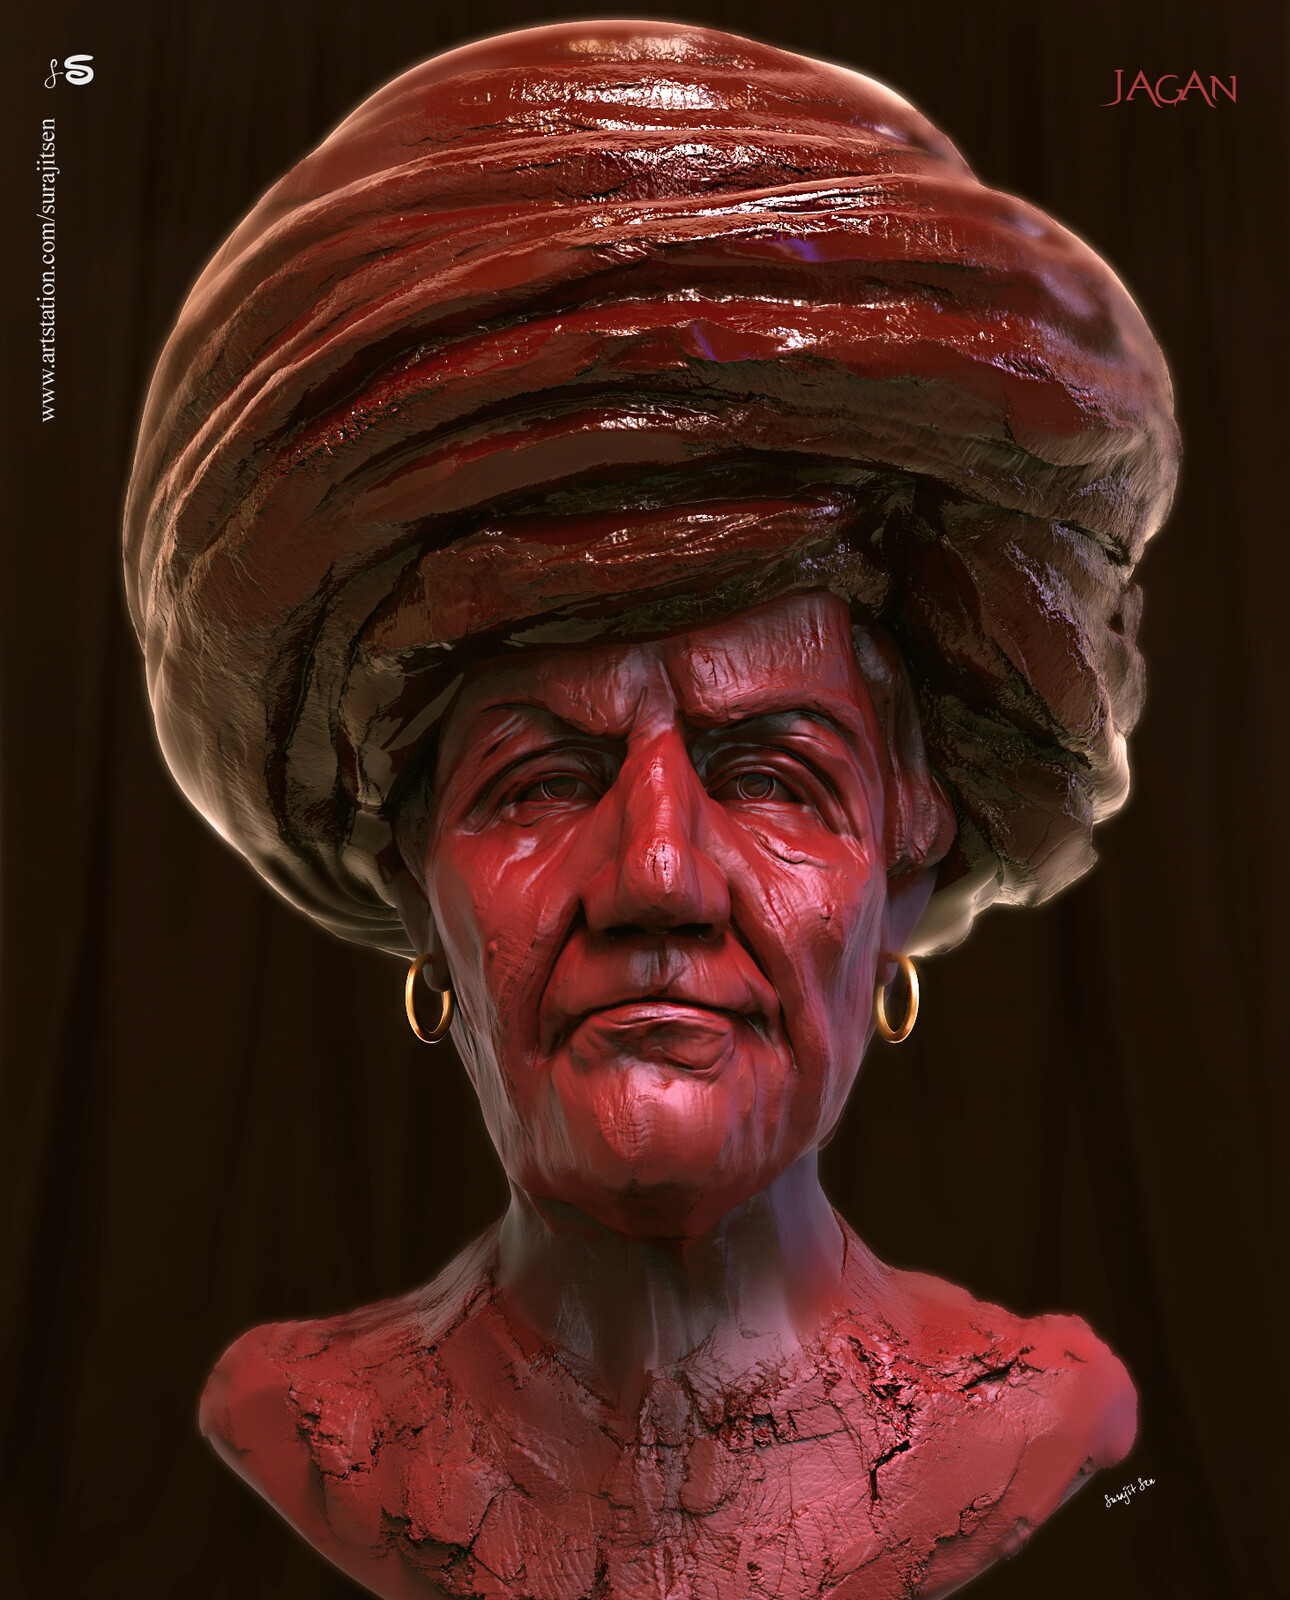 My free time speed Digital Sculpture.  Jagan.  Played with brushes.  Tried to make a form of my thoughts.